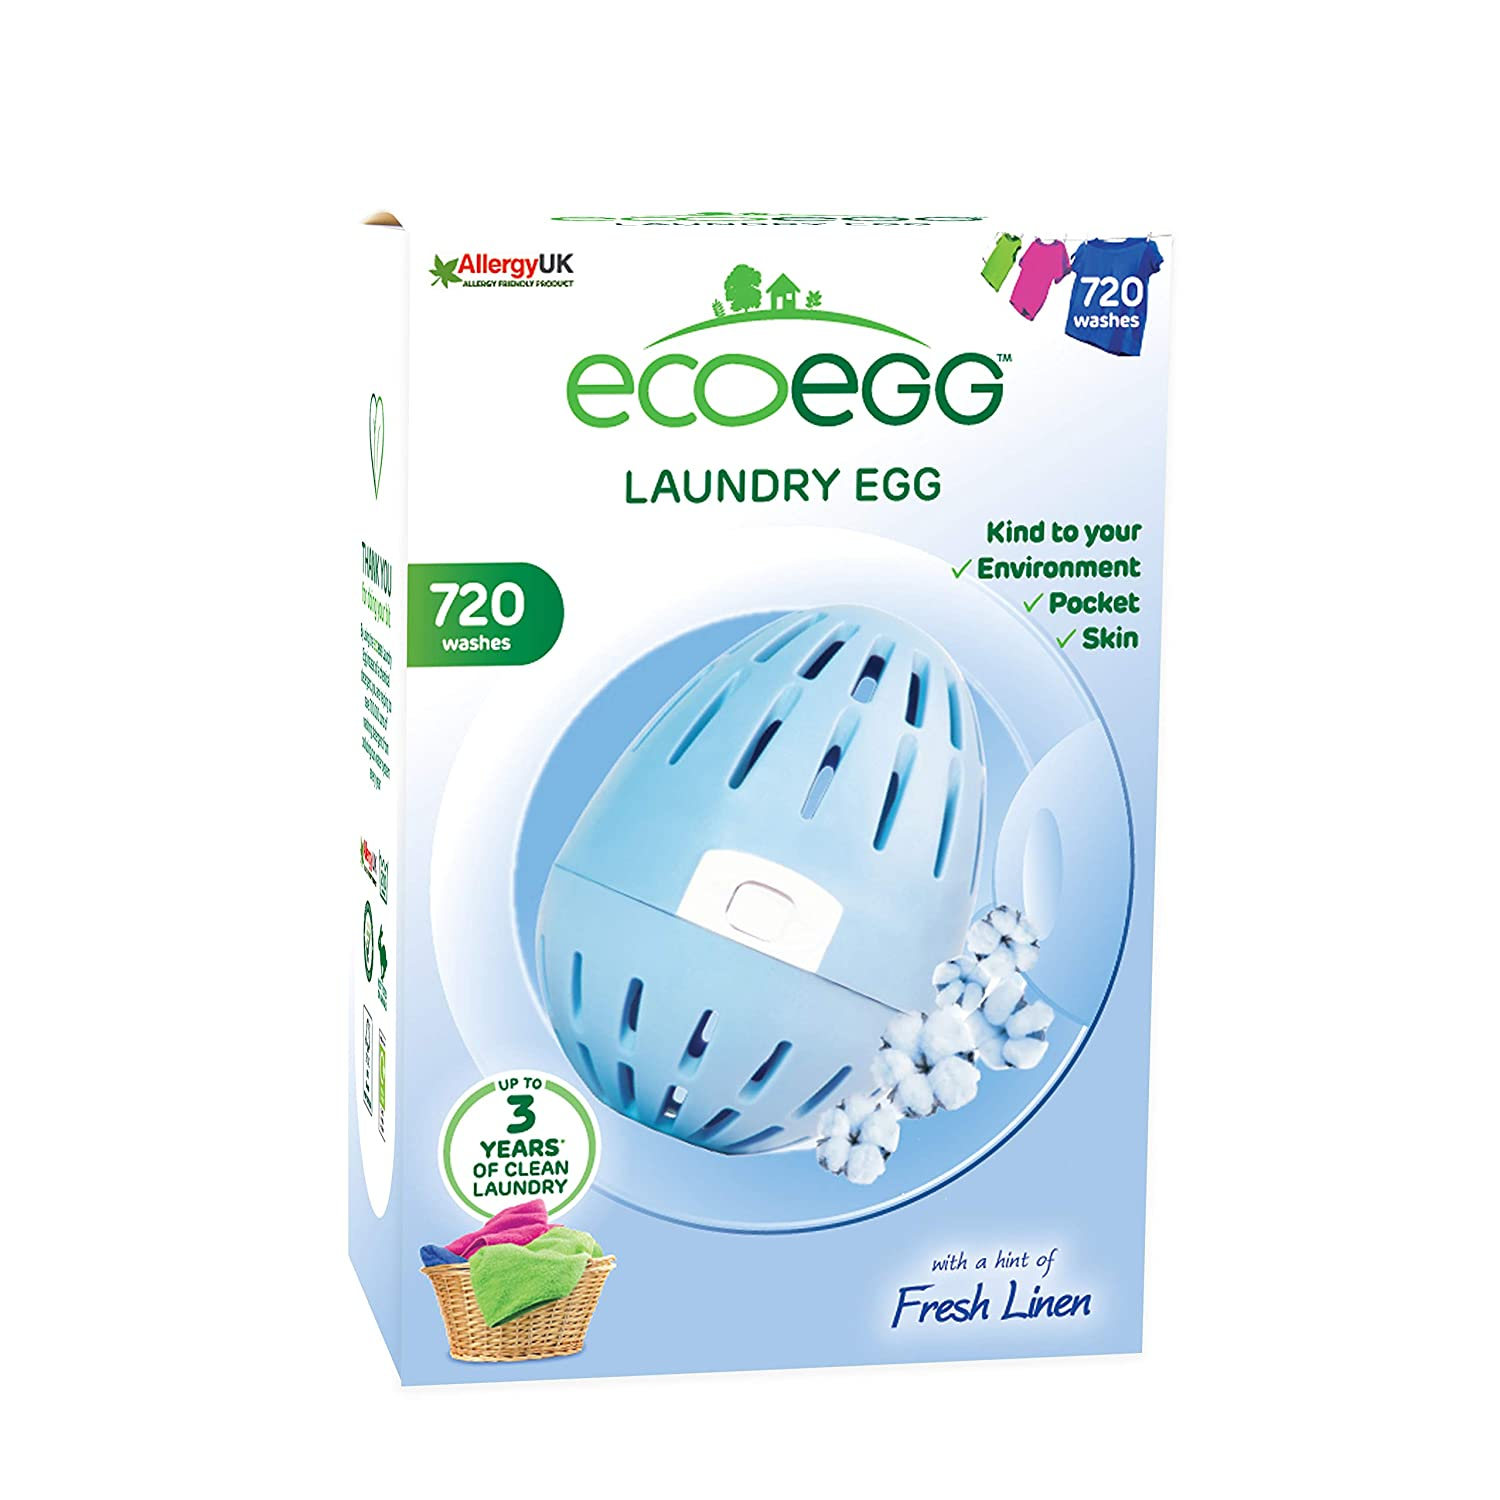 Ecoegg Laundry Egg, 720 Loads, Fresh Linen